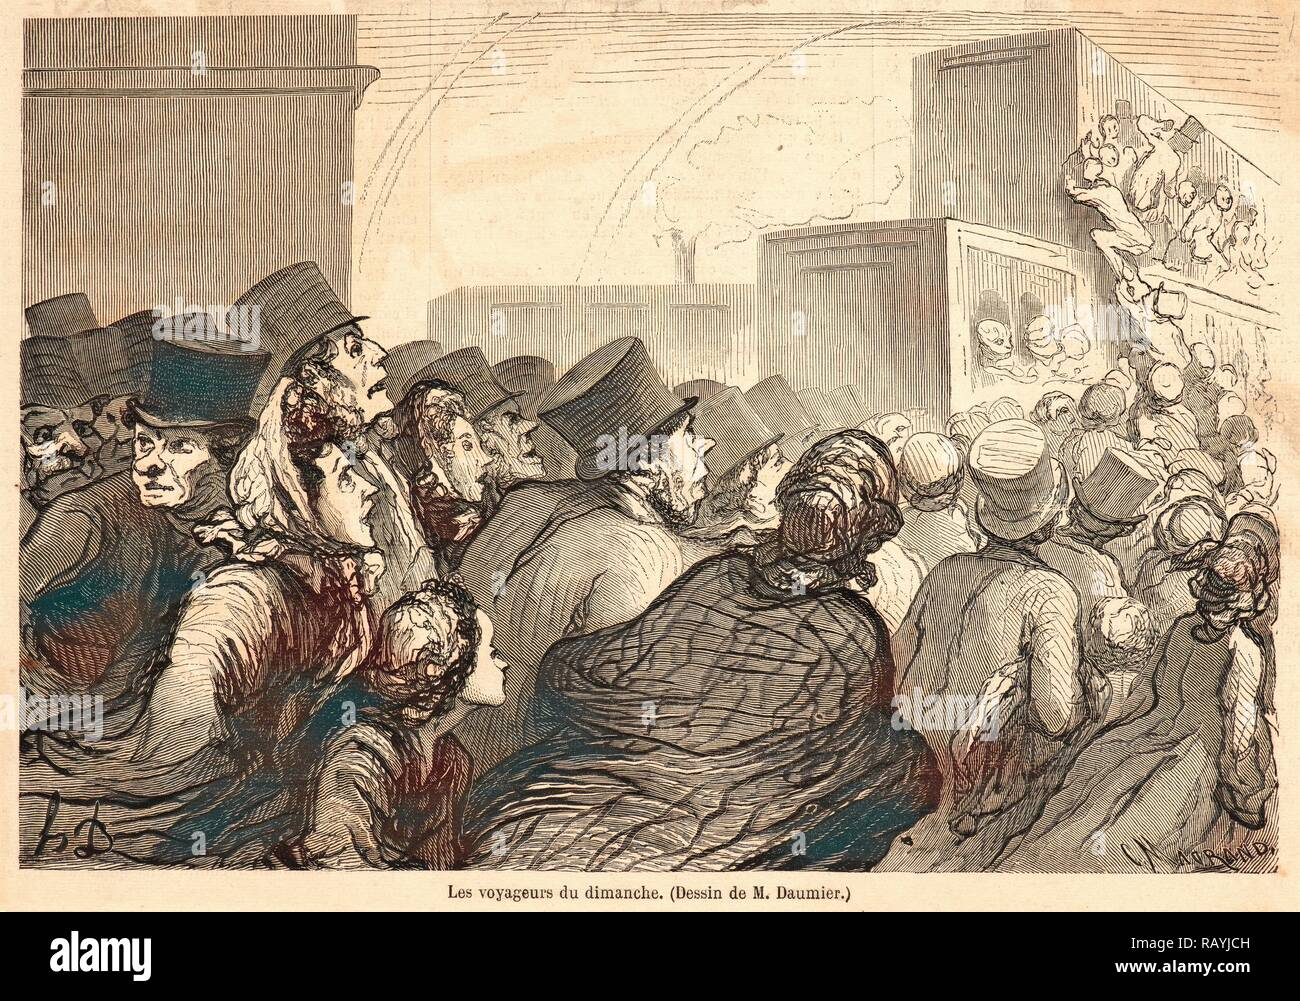 C. Maurand (French, active 19th century) after Honoré Daumier (French, 1808 - 1879). Les Voyageurs du Dimanche, 1862 reimagined - Stock Image